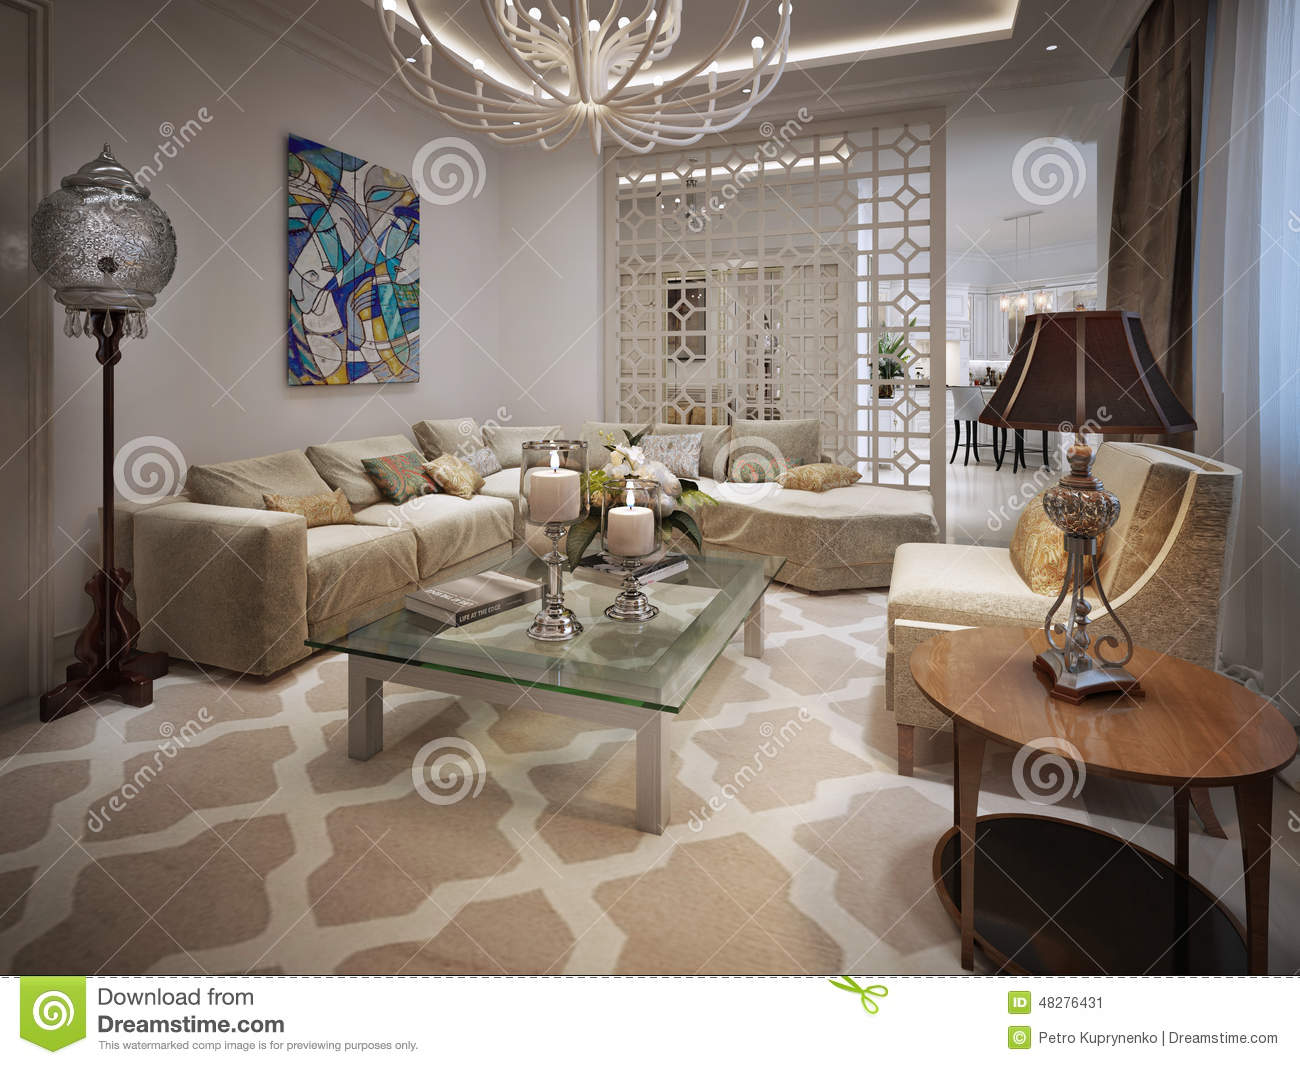 Chandelier On The Ceiling Arabic Pattern Royalty Free Stock Photography